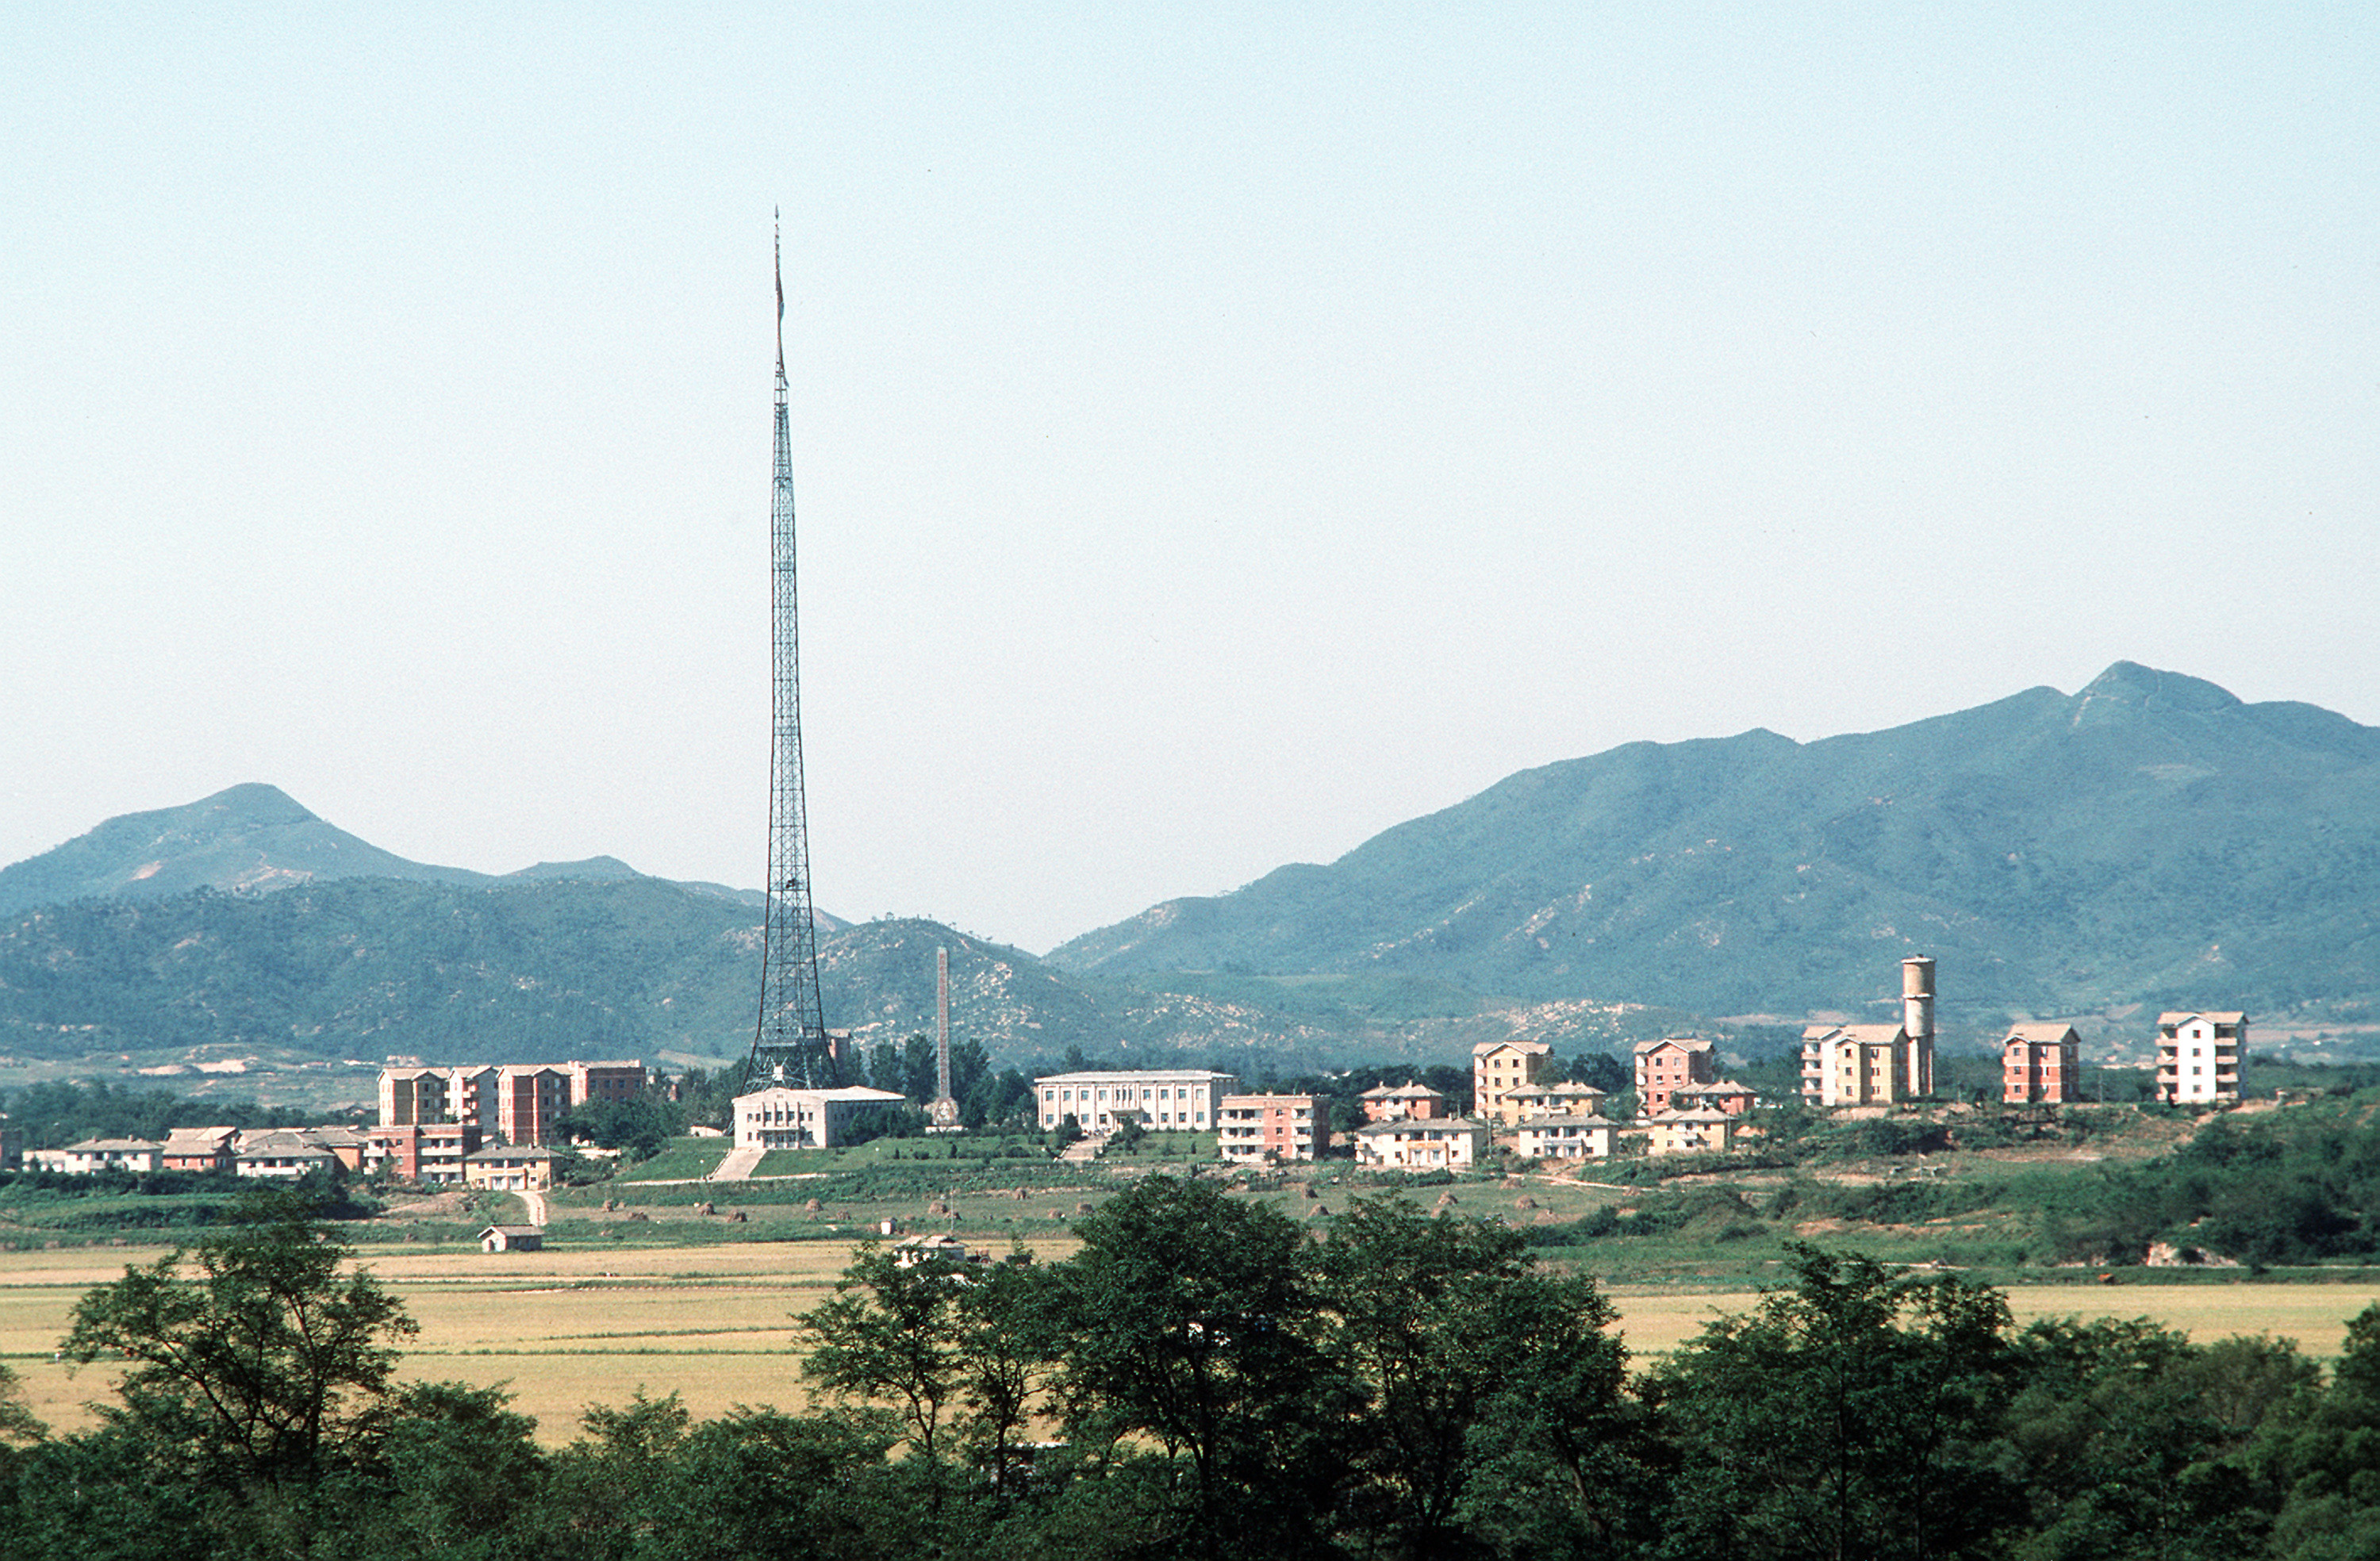 https://upload.wikimedia.org/wikipedia/commons/2/2c/North_Korean_village_Kijong-dong.JPEG